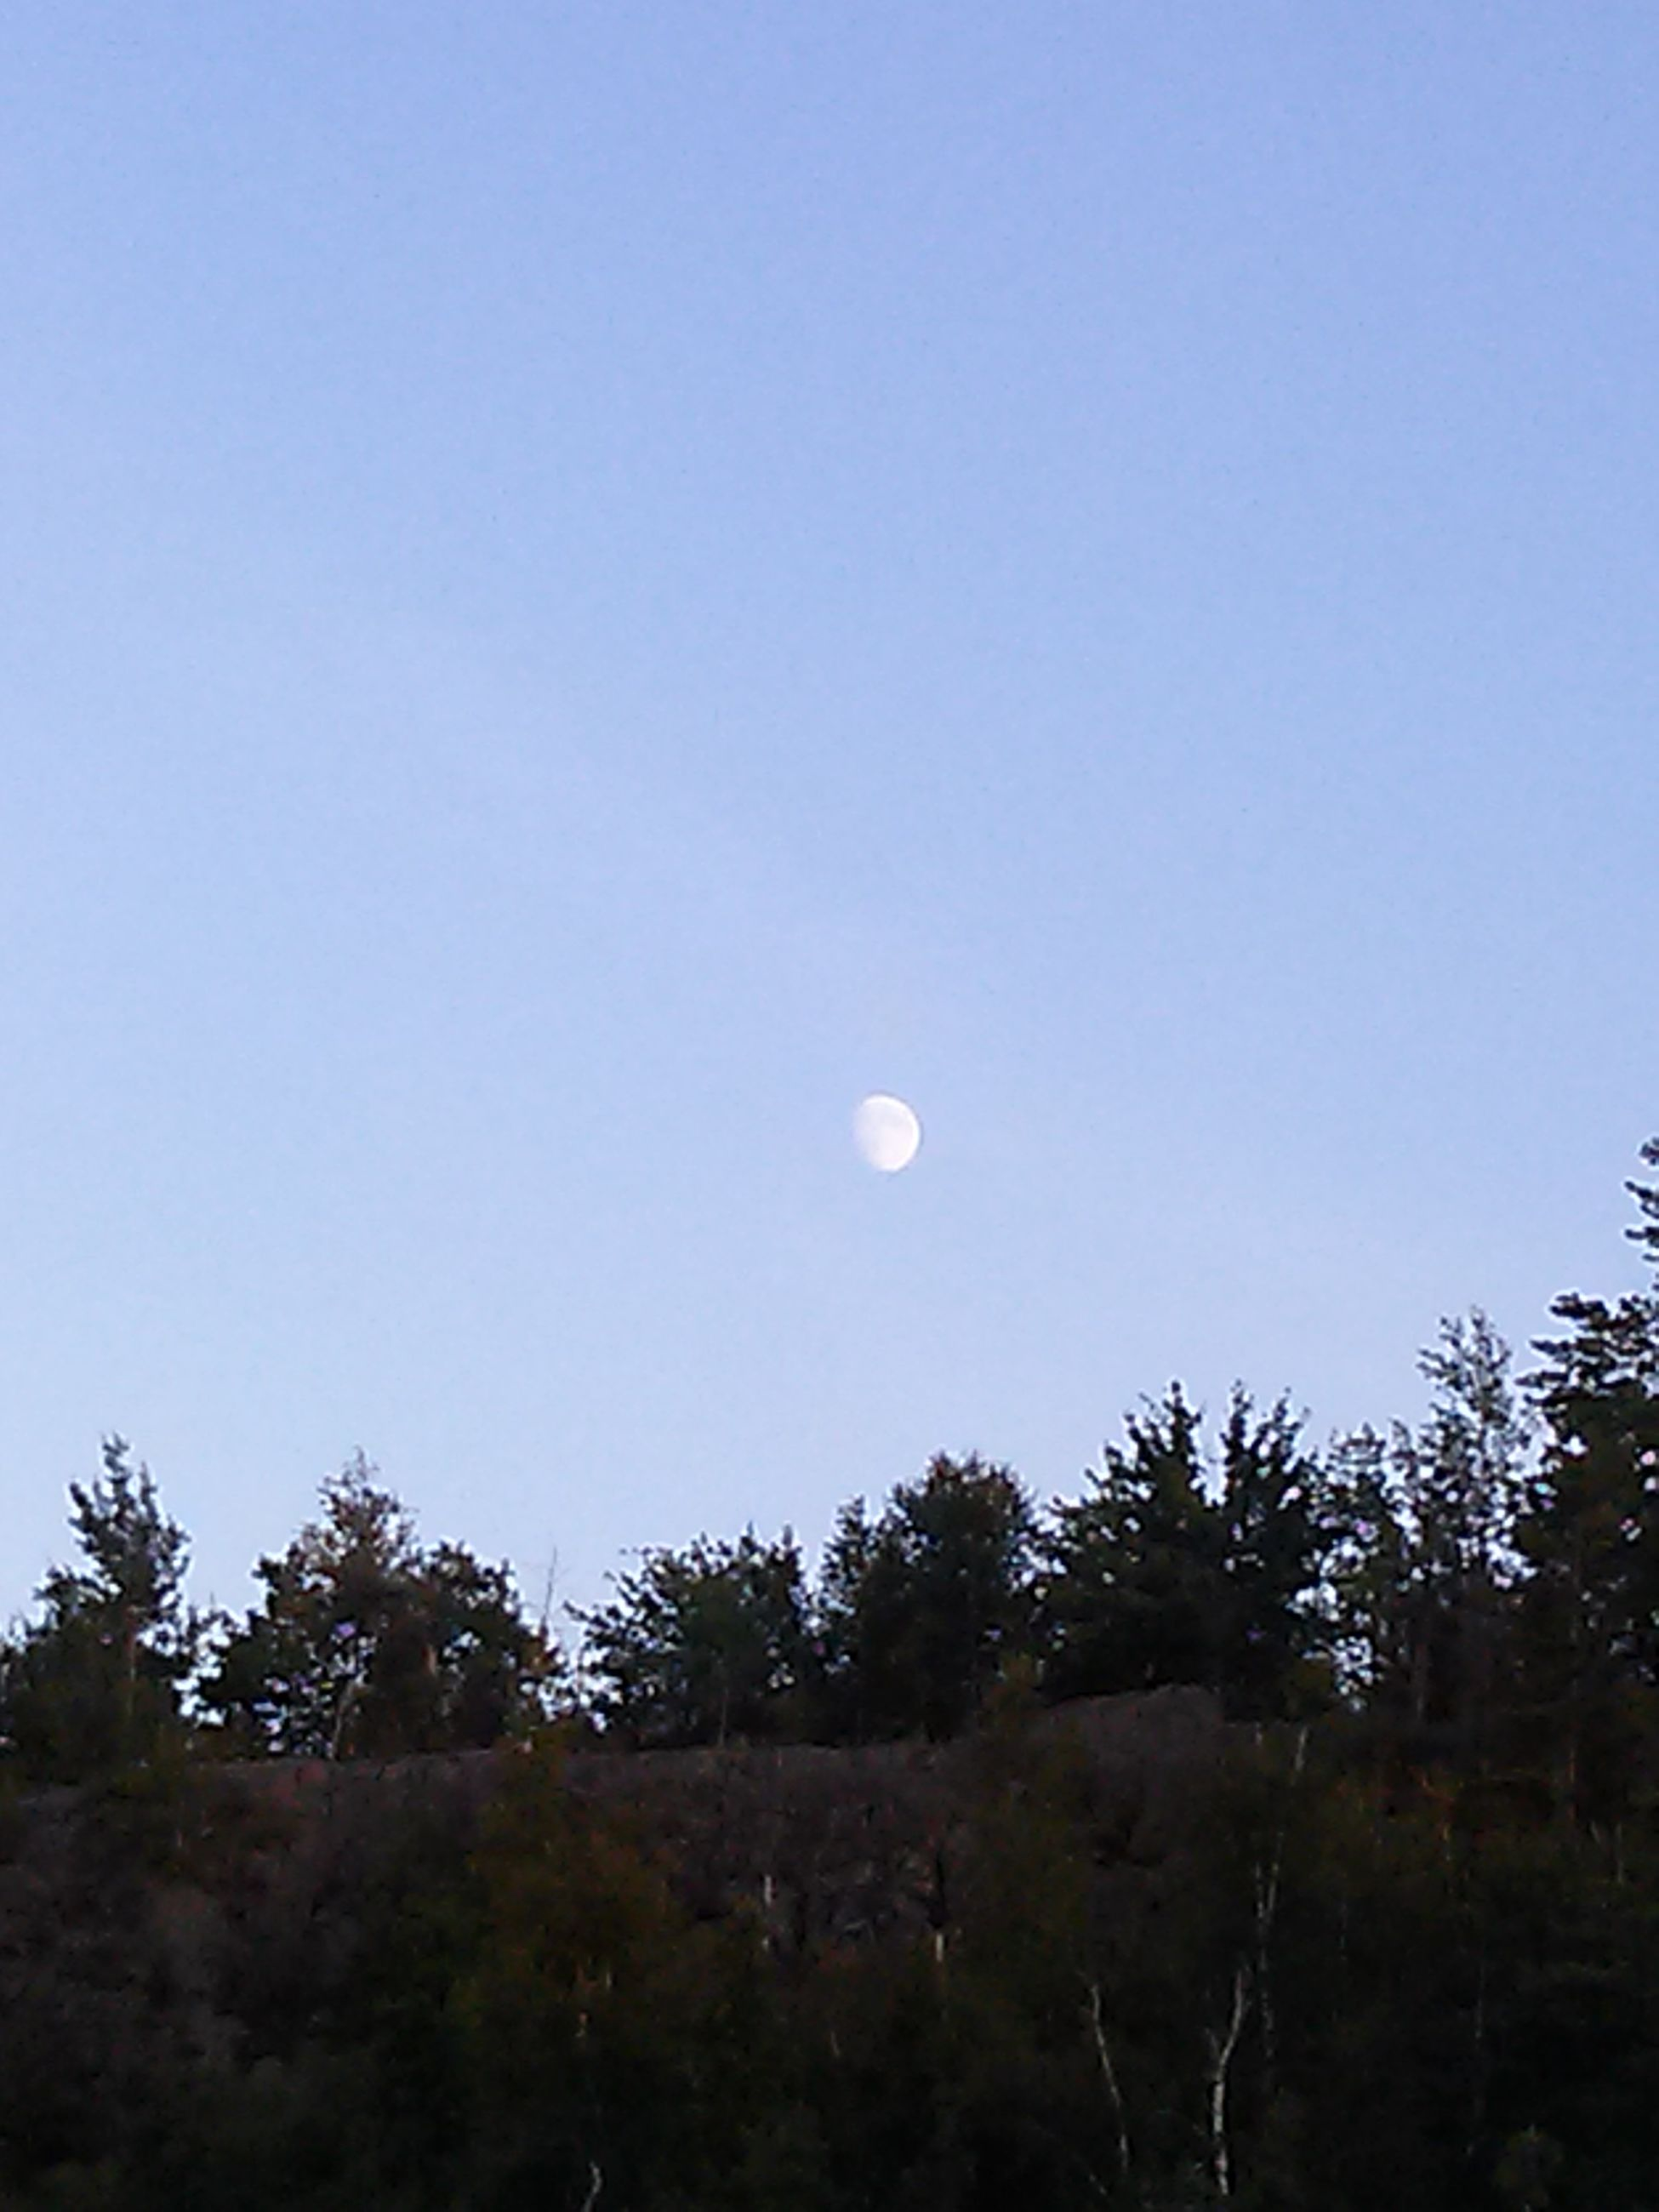 clear sky, moon, copy space, tranquility, tranquil scene, beauty in nature, tree, low angle view, scenics, nature, sky, silhouette, full moon, blue, astronomy, idyllic, growth, outdoors, dusk, no people